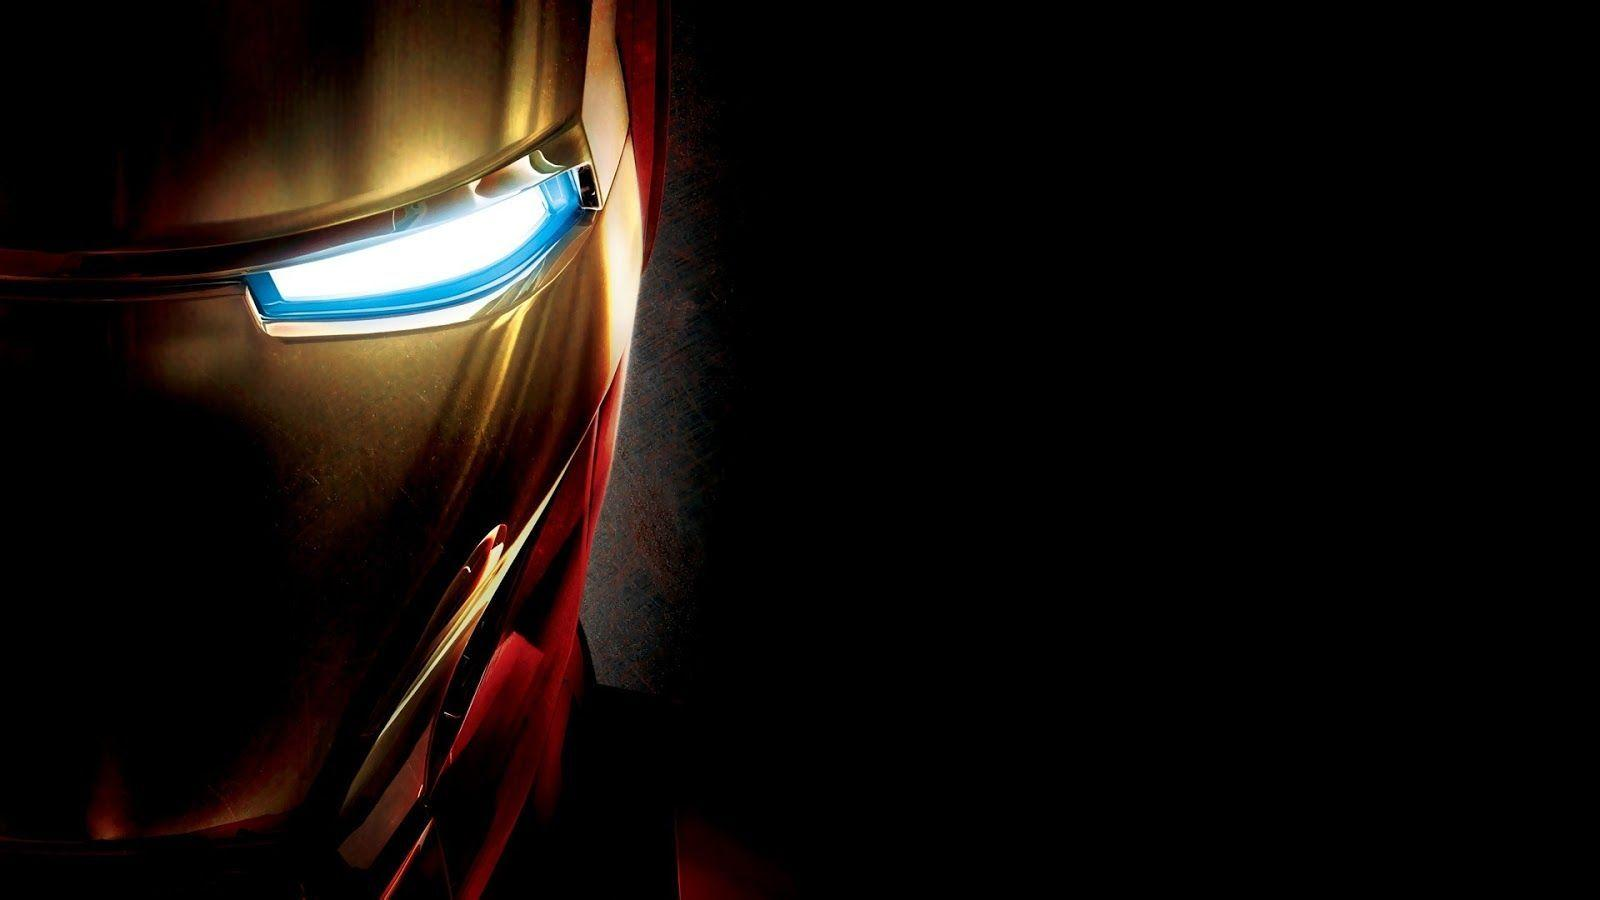 iron man suits hd wallpapers - wallpaper cave